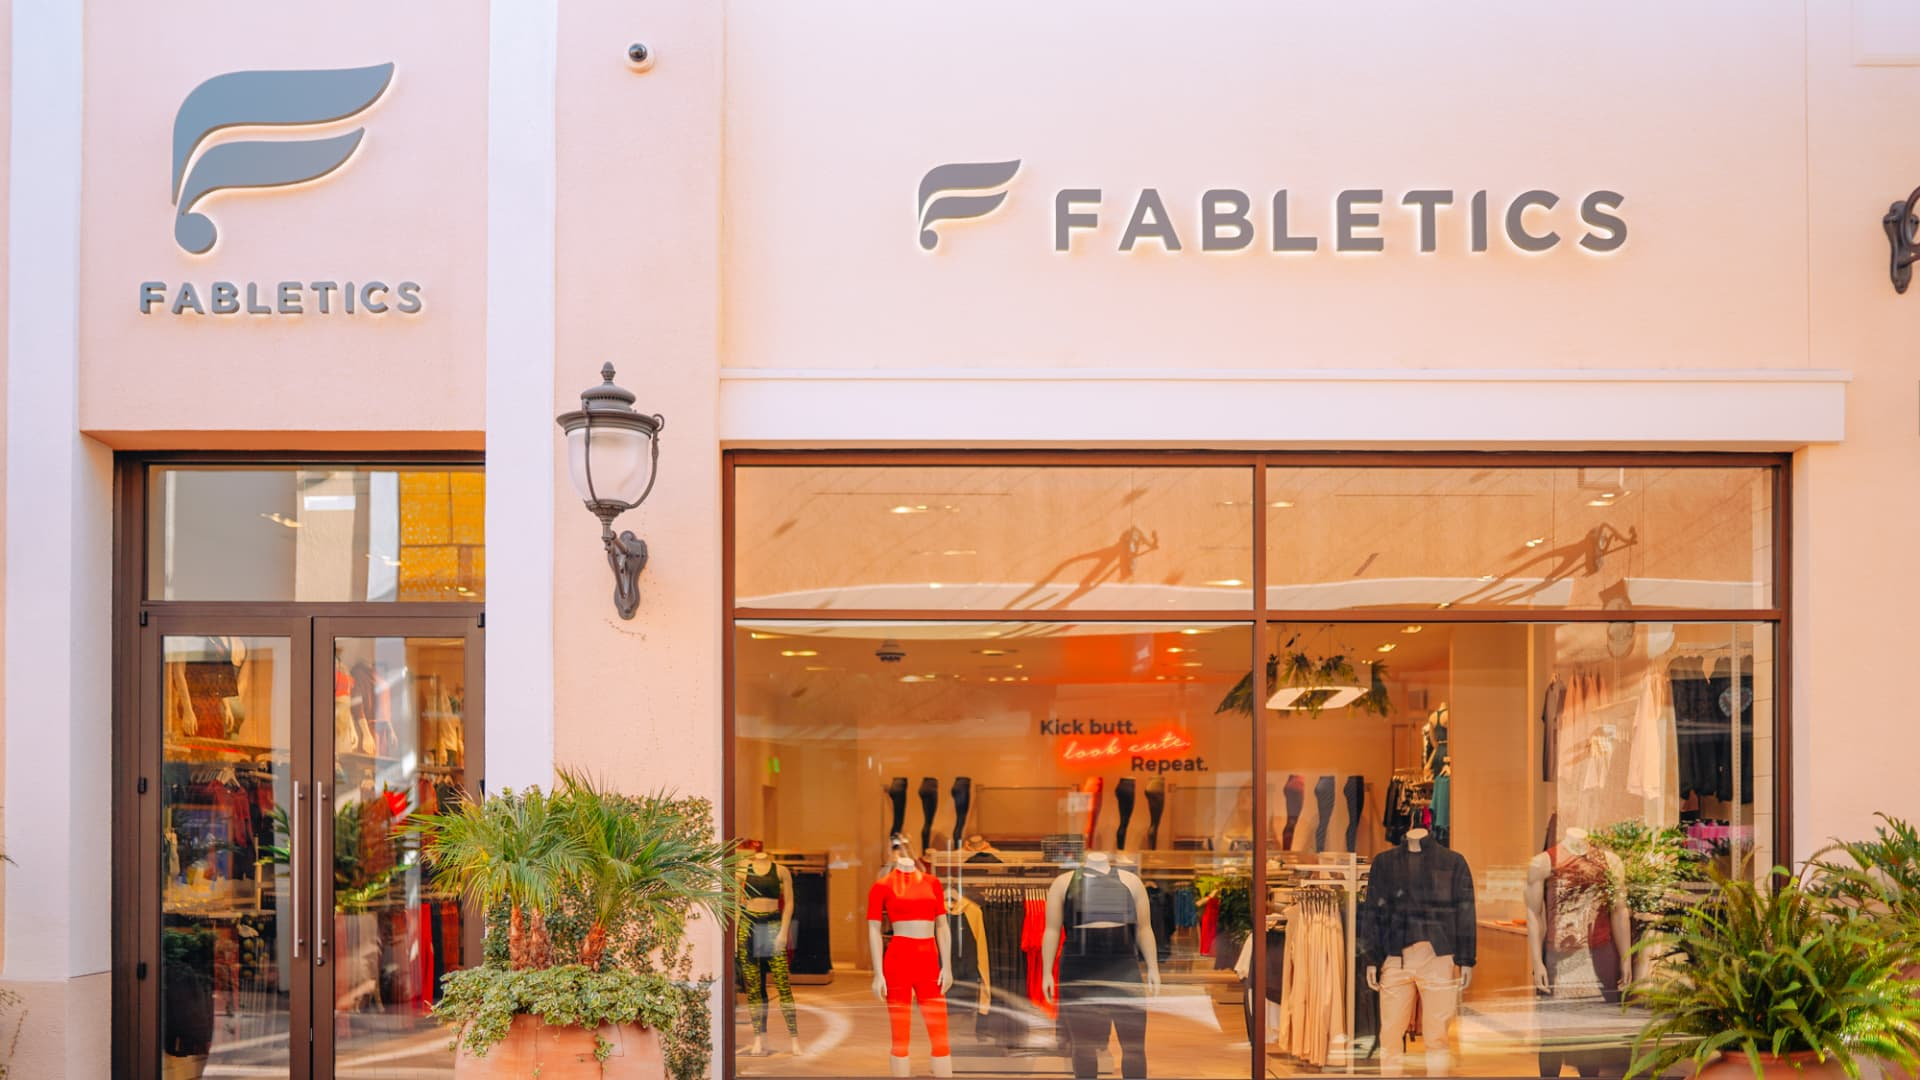 The athletic apparel retailer Fabletics is planning to open two dozen stores in the U.S. this year, bringing its total to 74.